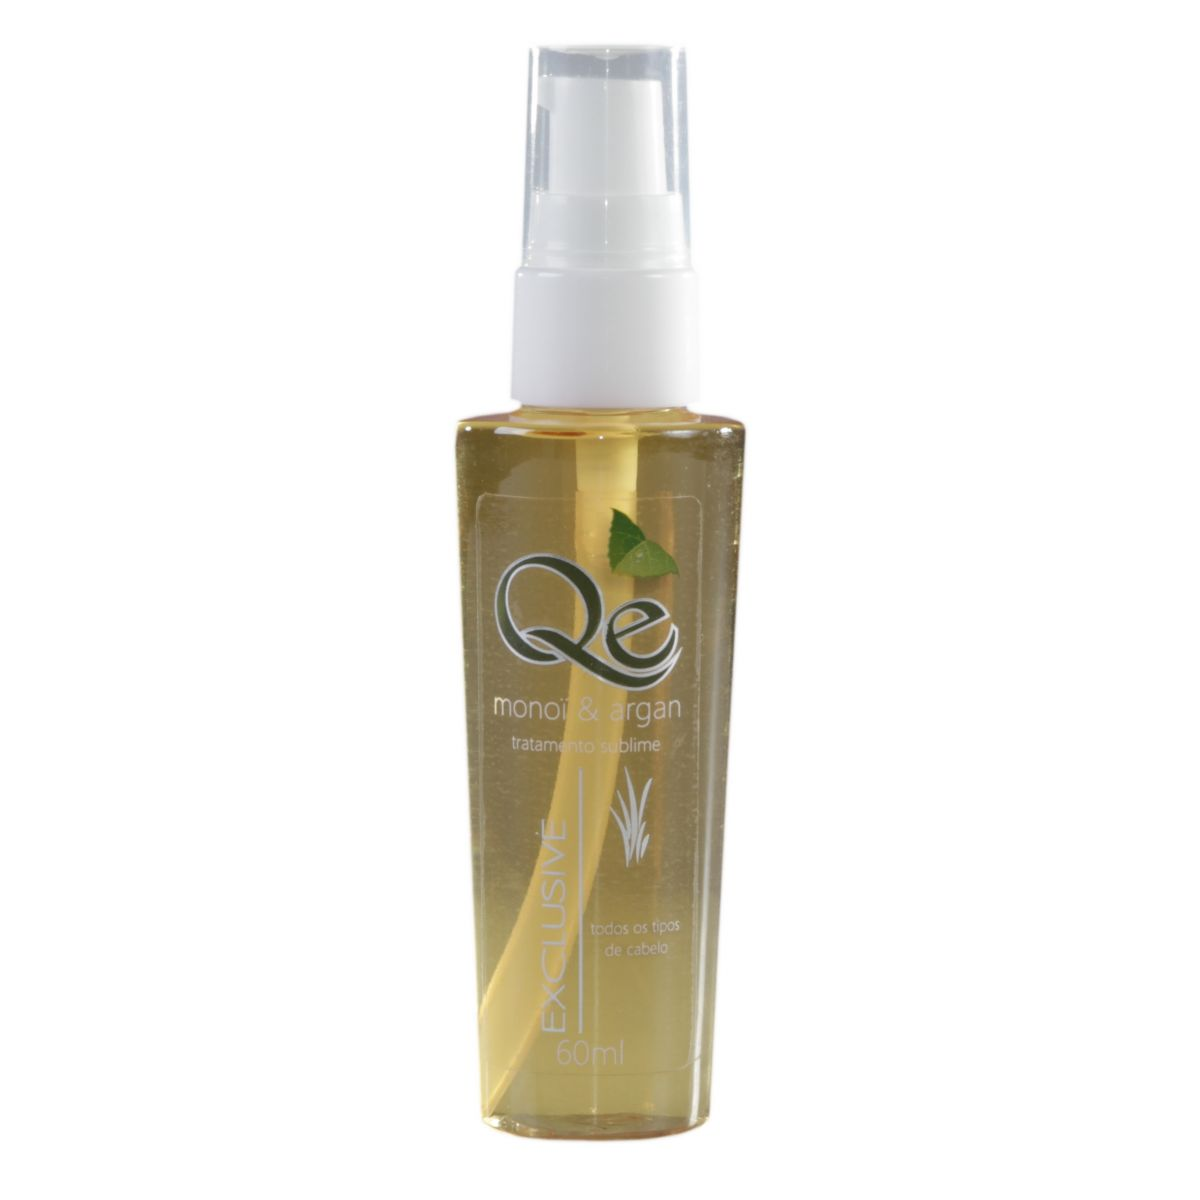 MONOÏ & ARGAN 60ML  - LOJA QUINTA ESSENCIA